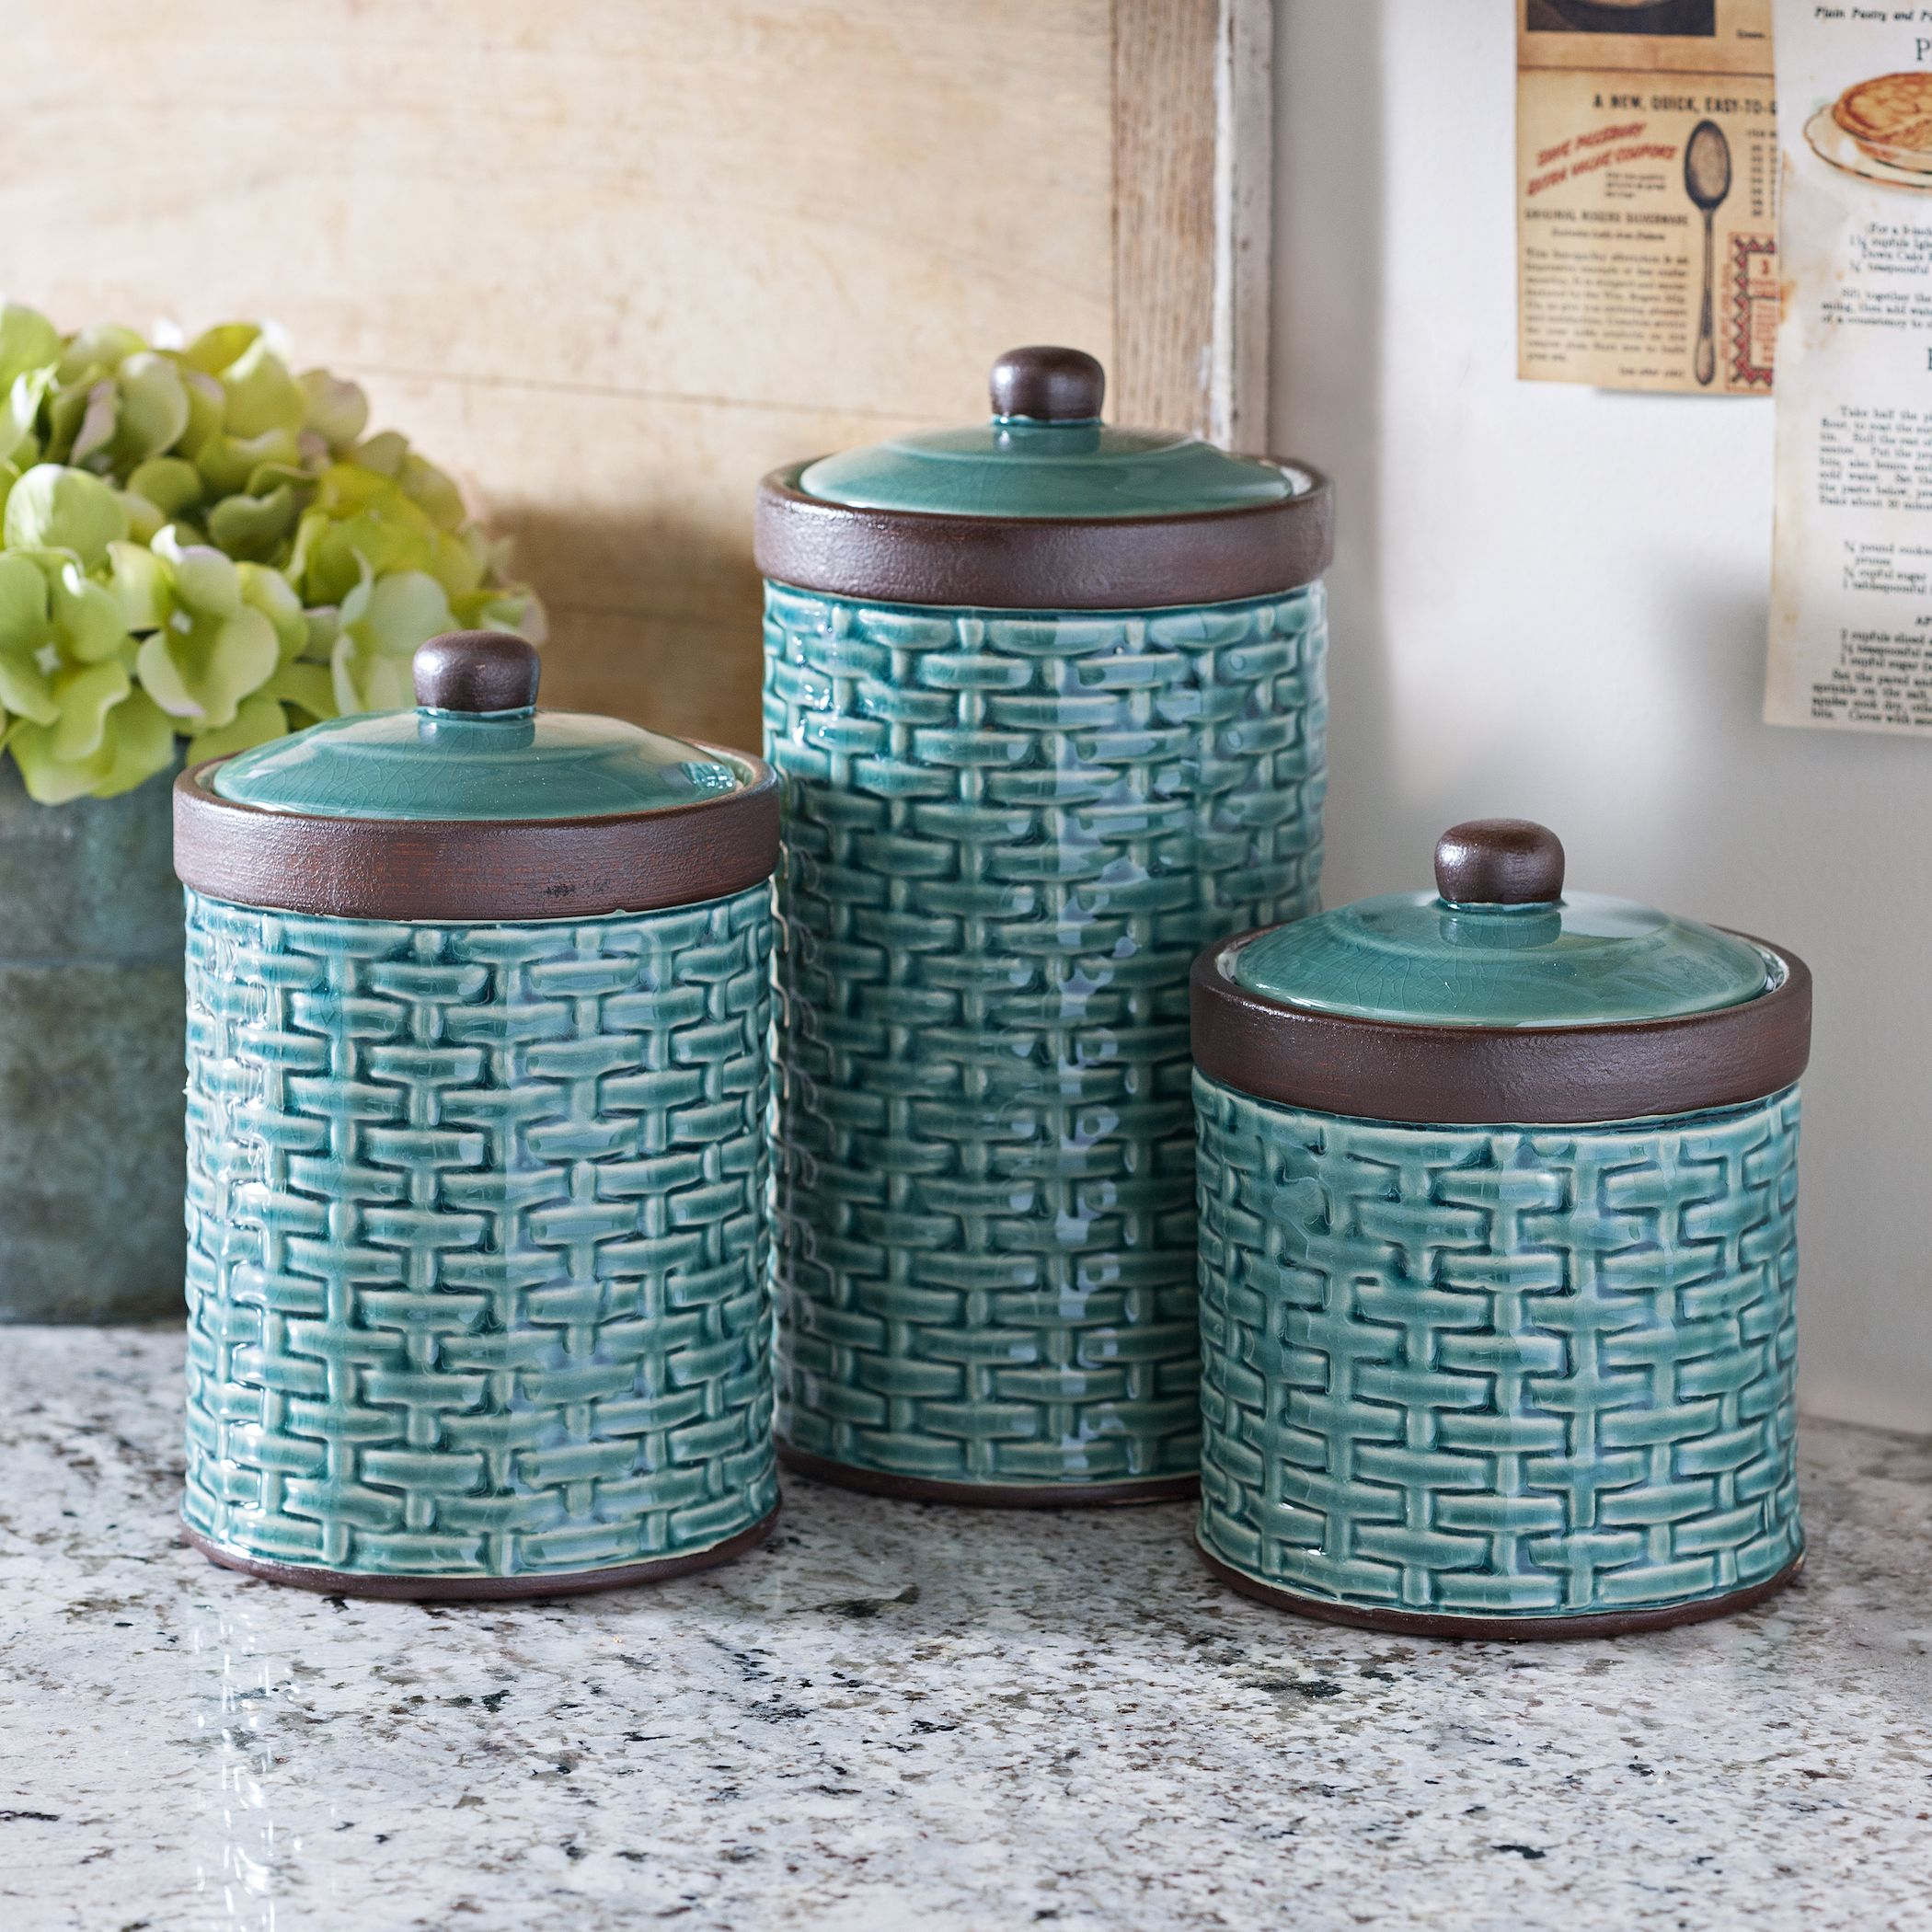 Blue Woven Kitchen Canisters, Set of 3 | Creative Kitchens ...